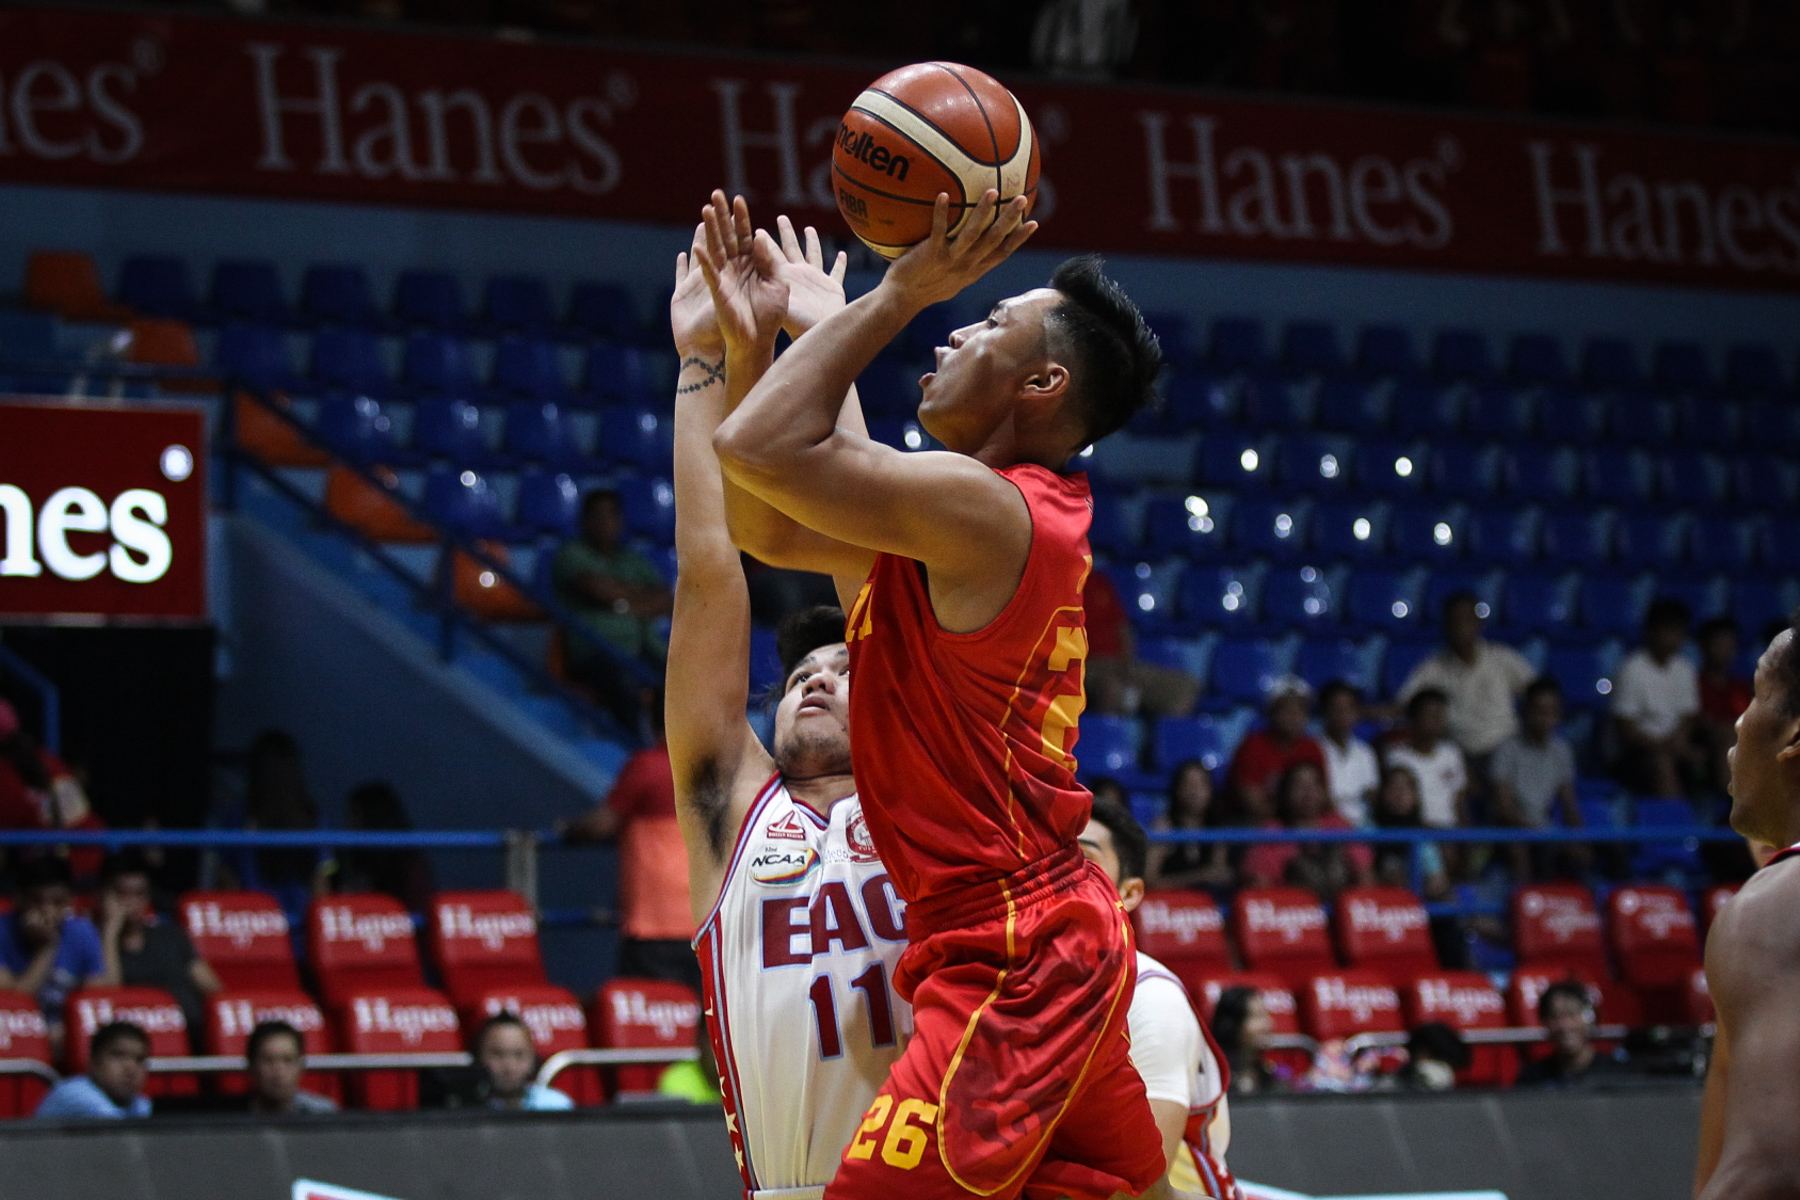 HOLDING THE FORT. Mapua gets the win and remains undefeated even without its big man. Photo by Josh Albelda/Rappler